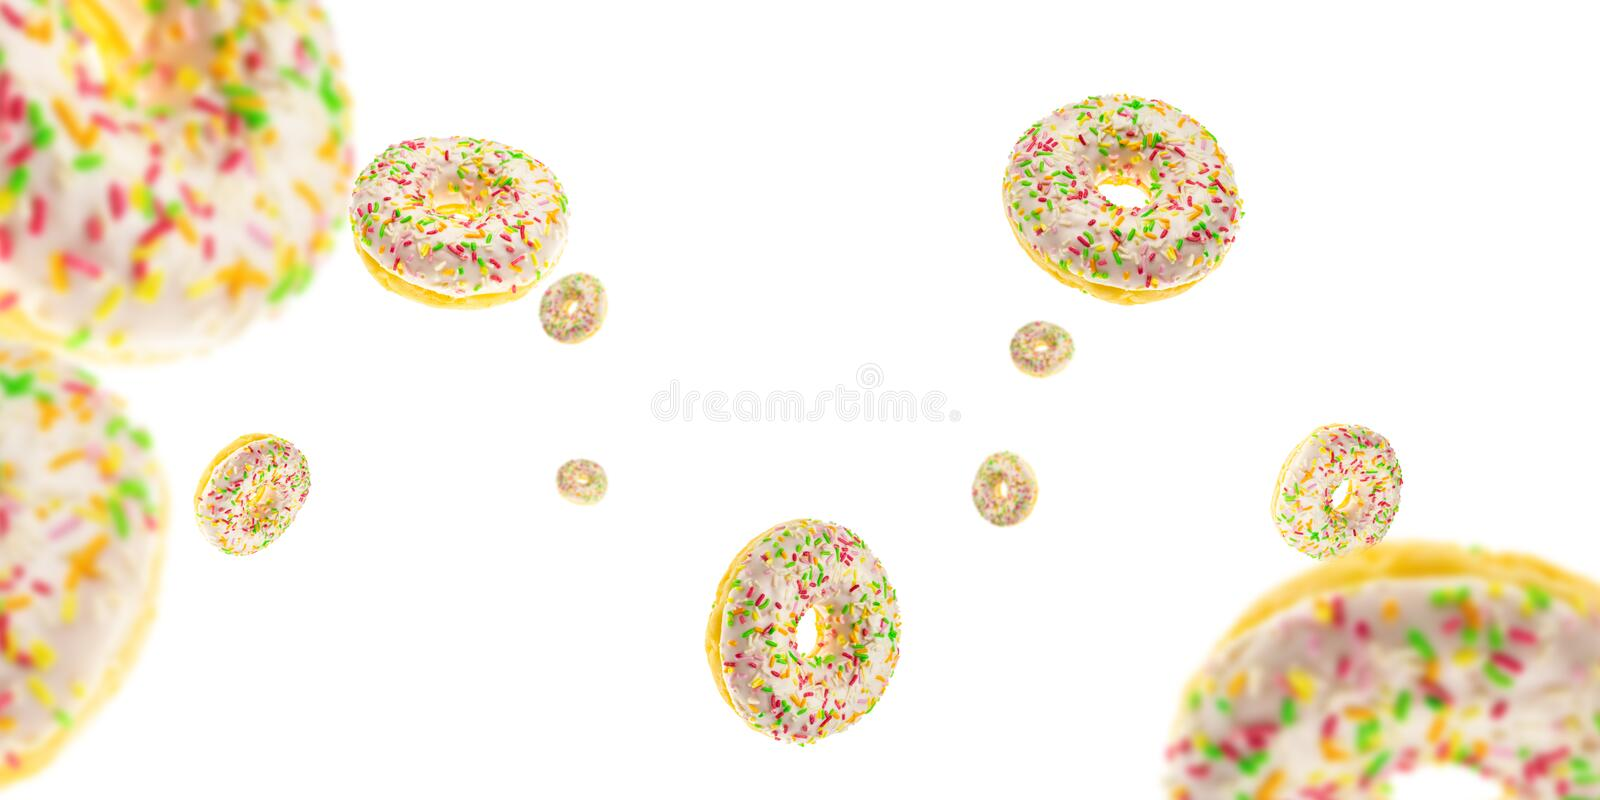 Doughnut with frosting. Glazed sweet doughnut falling on white background royalty free stock images